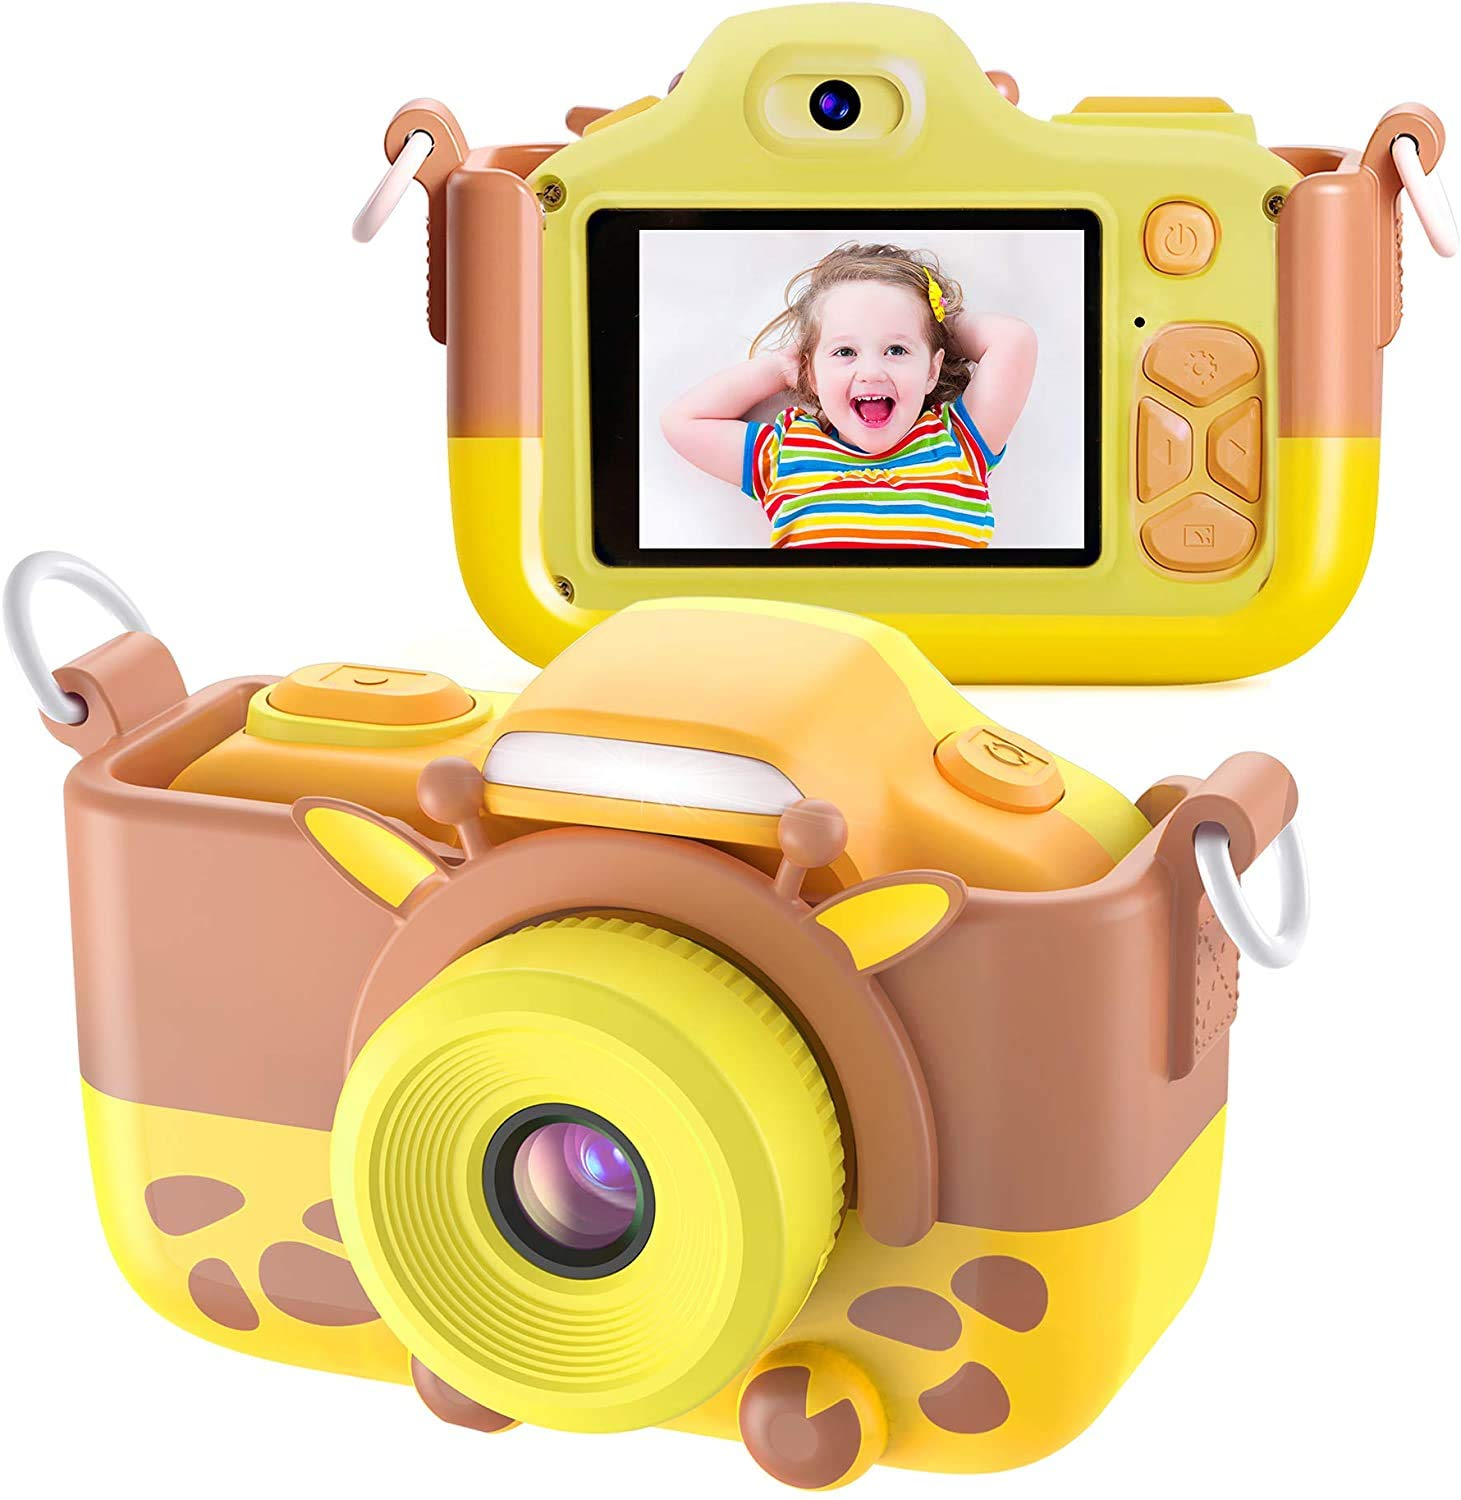 Twinto Kids Camera, Digital Camera Selfie and Video Camera with 12MP/ HD 1080P/ Dual Lens/ 2.0 inch Screen/ 256M Micro SD Card, Birthday Gift for Boys Girls (Yellow)